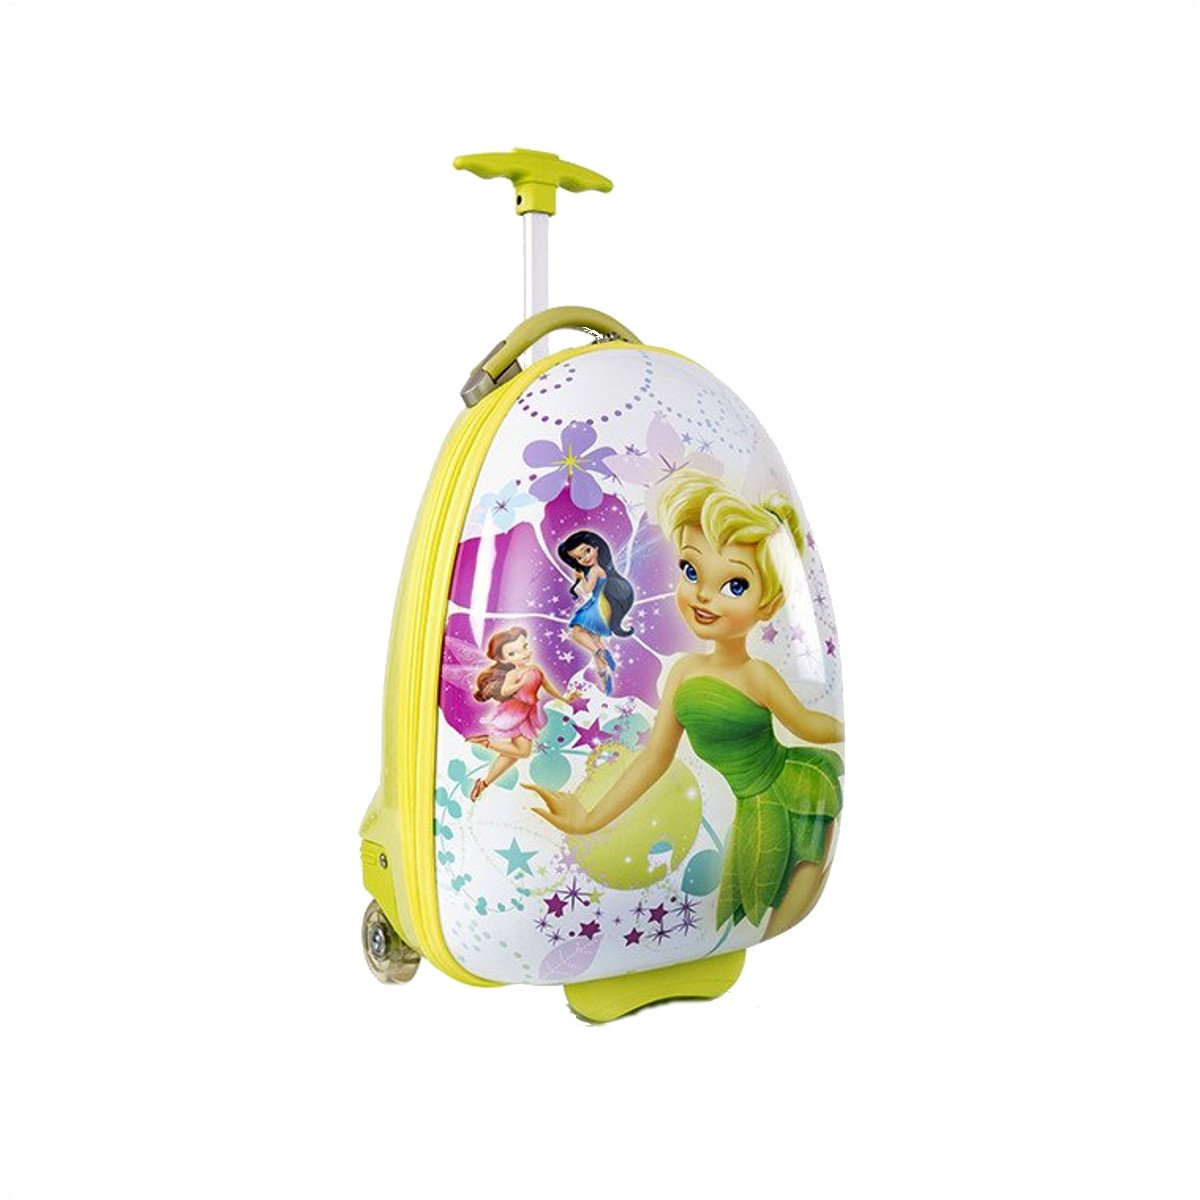 Heys Disney Fairies Super Cute Kids Carry on Approved Luggage 18 inch